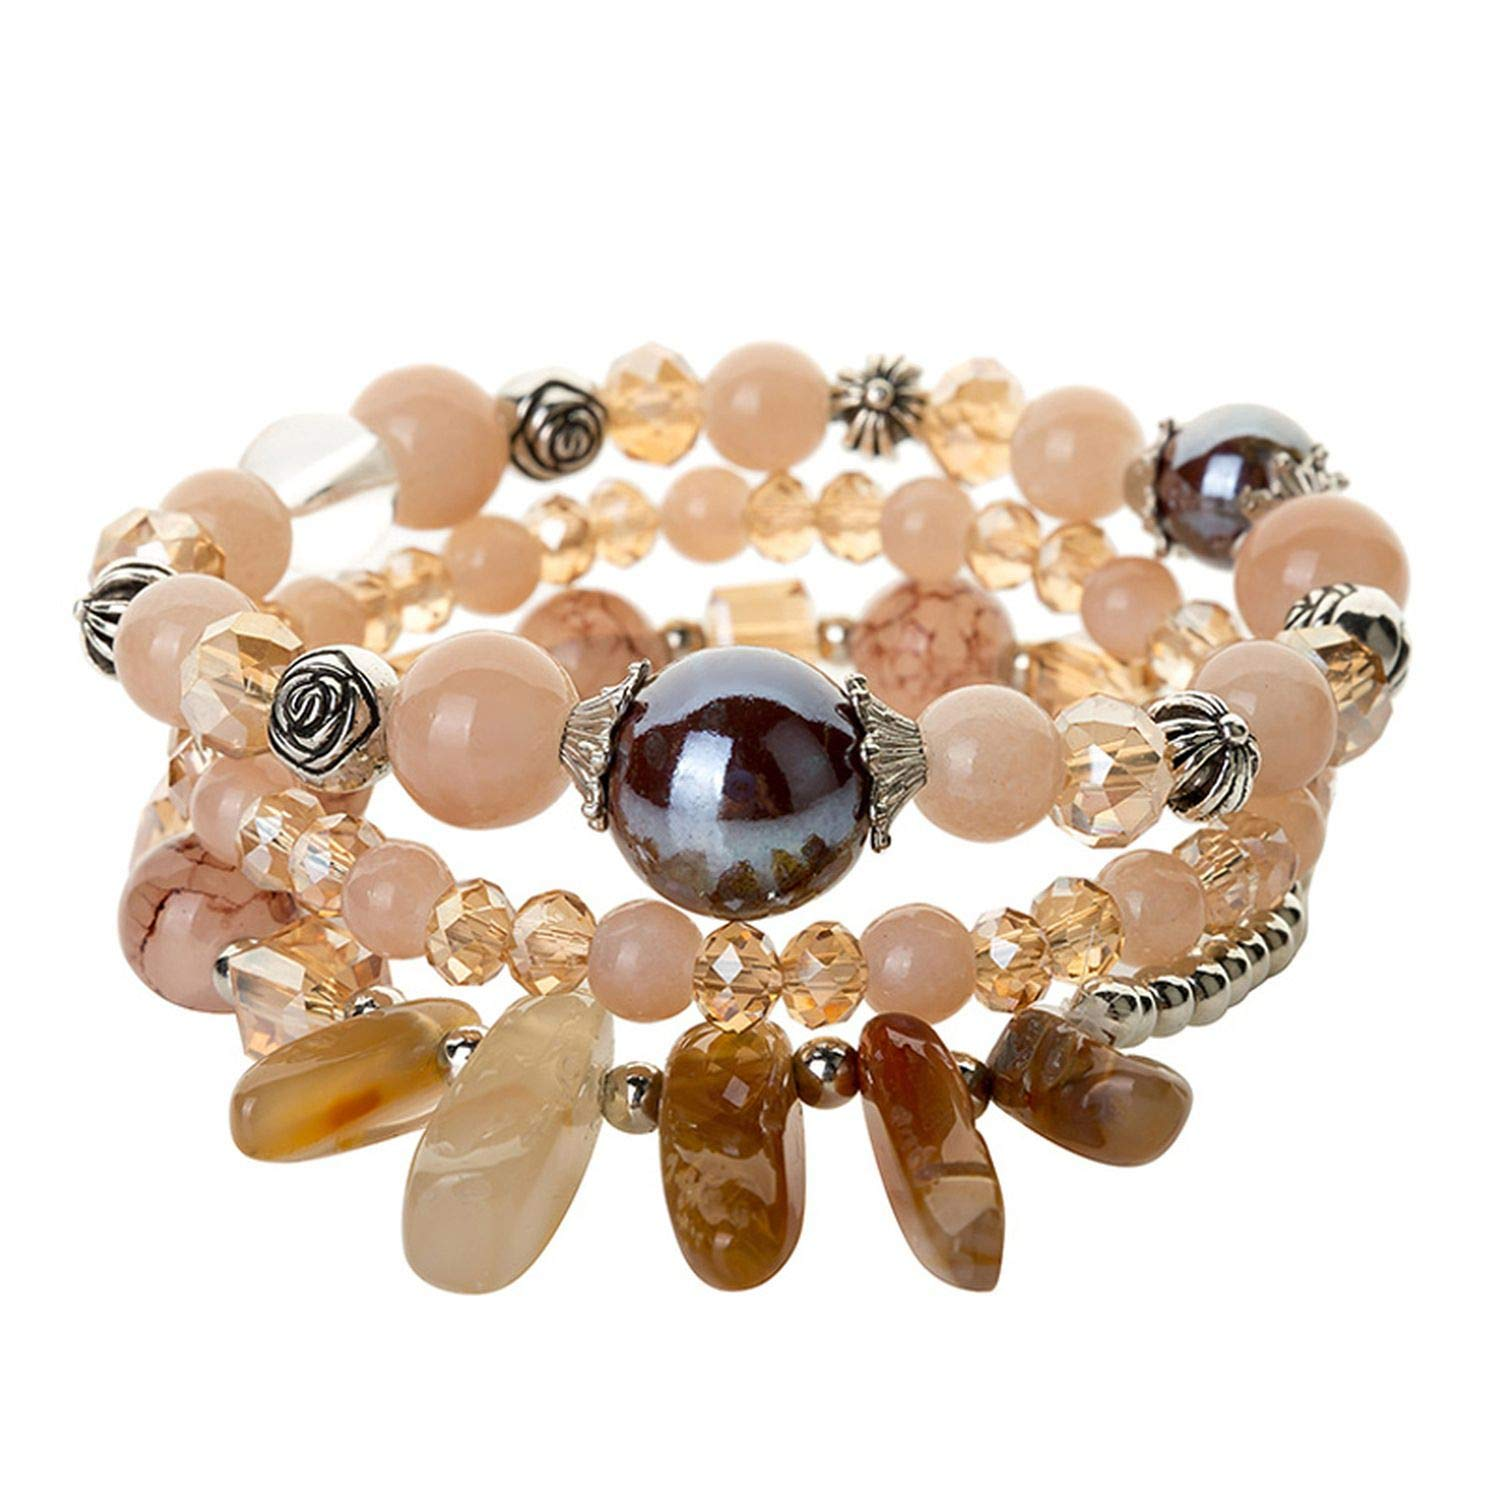 AMBER DAVIDSON Natural Stone Charm Bracelets Crystal Beaded Strand Set Bracelets for Women Fashion Jewelry